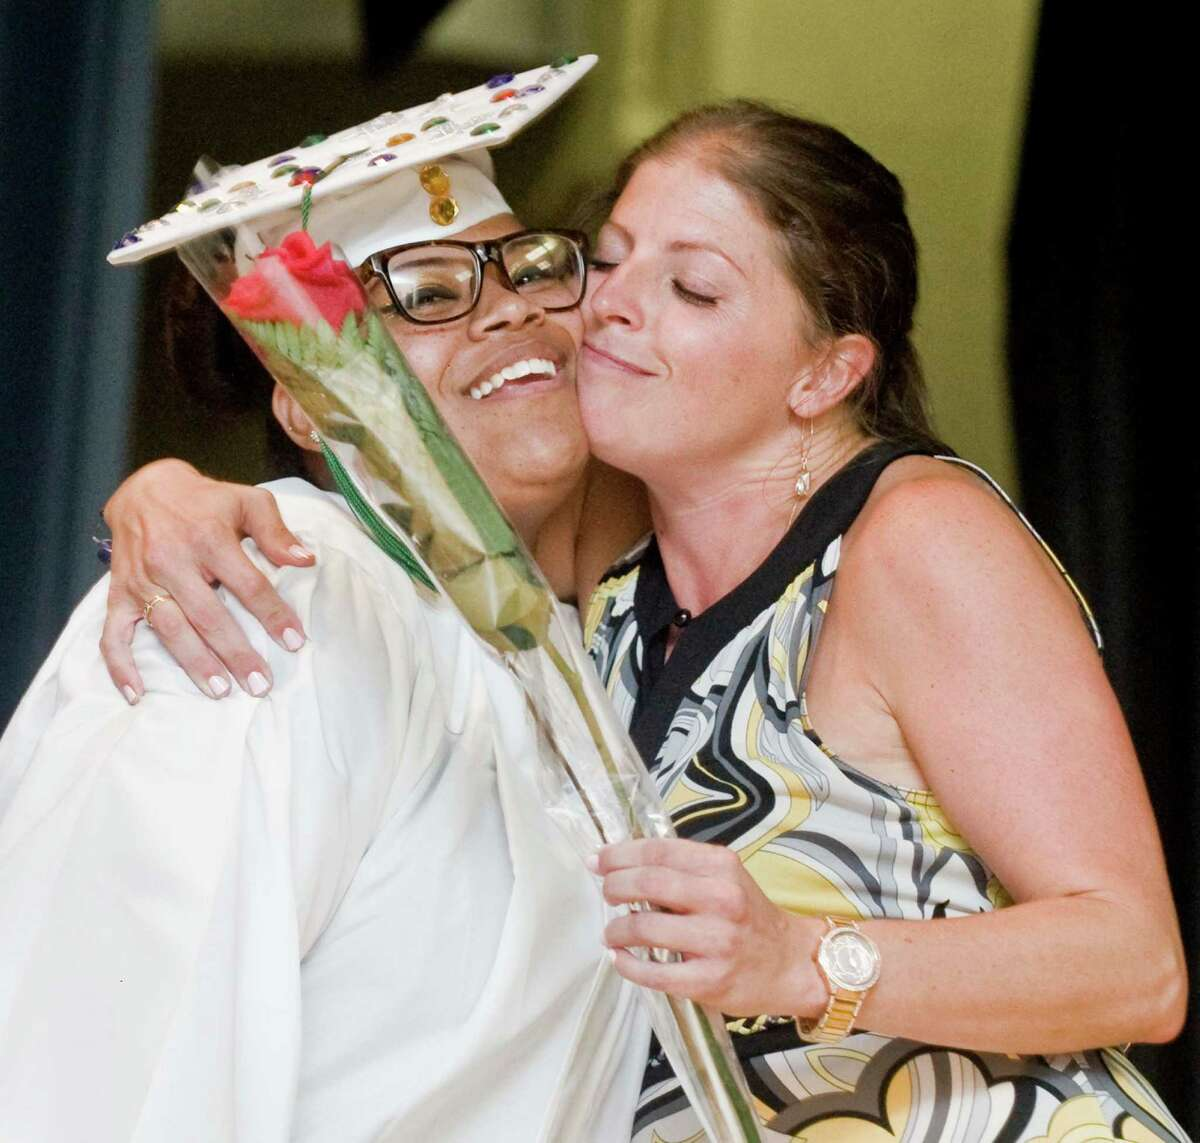 Stamford Academy graduate Keyondra Gay gets a hug from Director of Curriculum Andrea Weller during the graduation ceremony held at Trailblazers Academy in Stamford. Wednesday, June 15, 2016